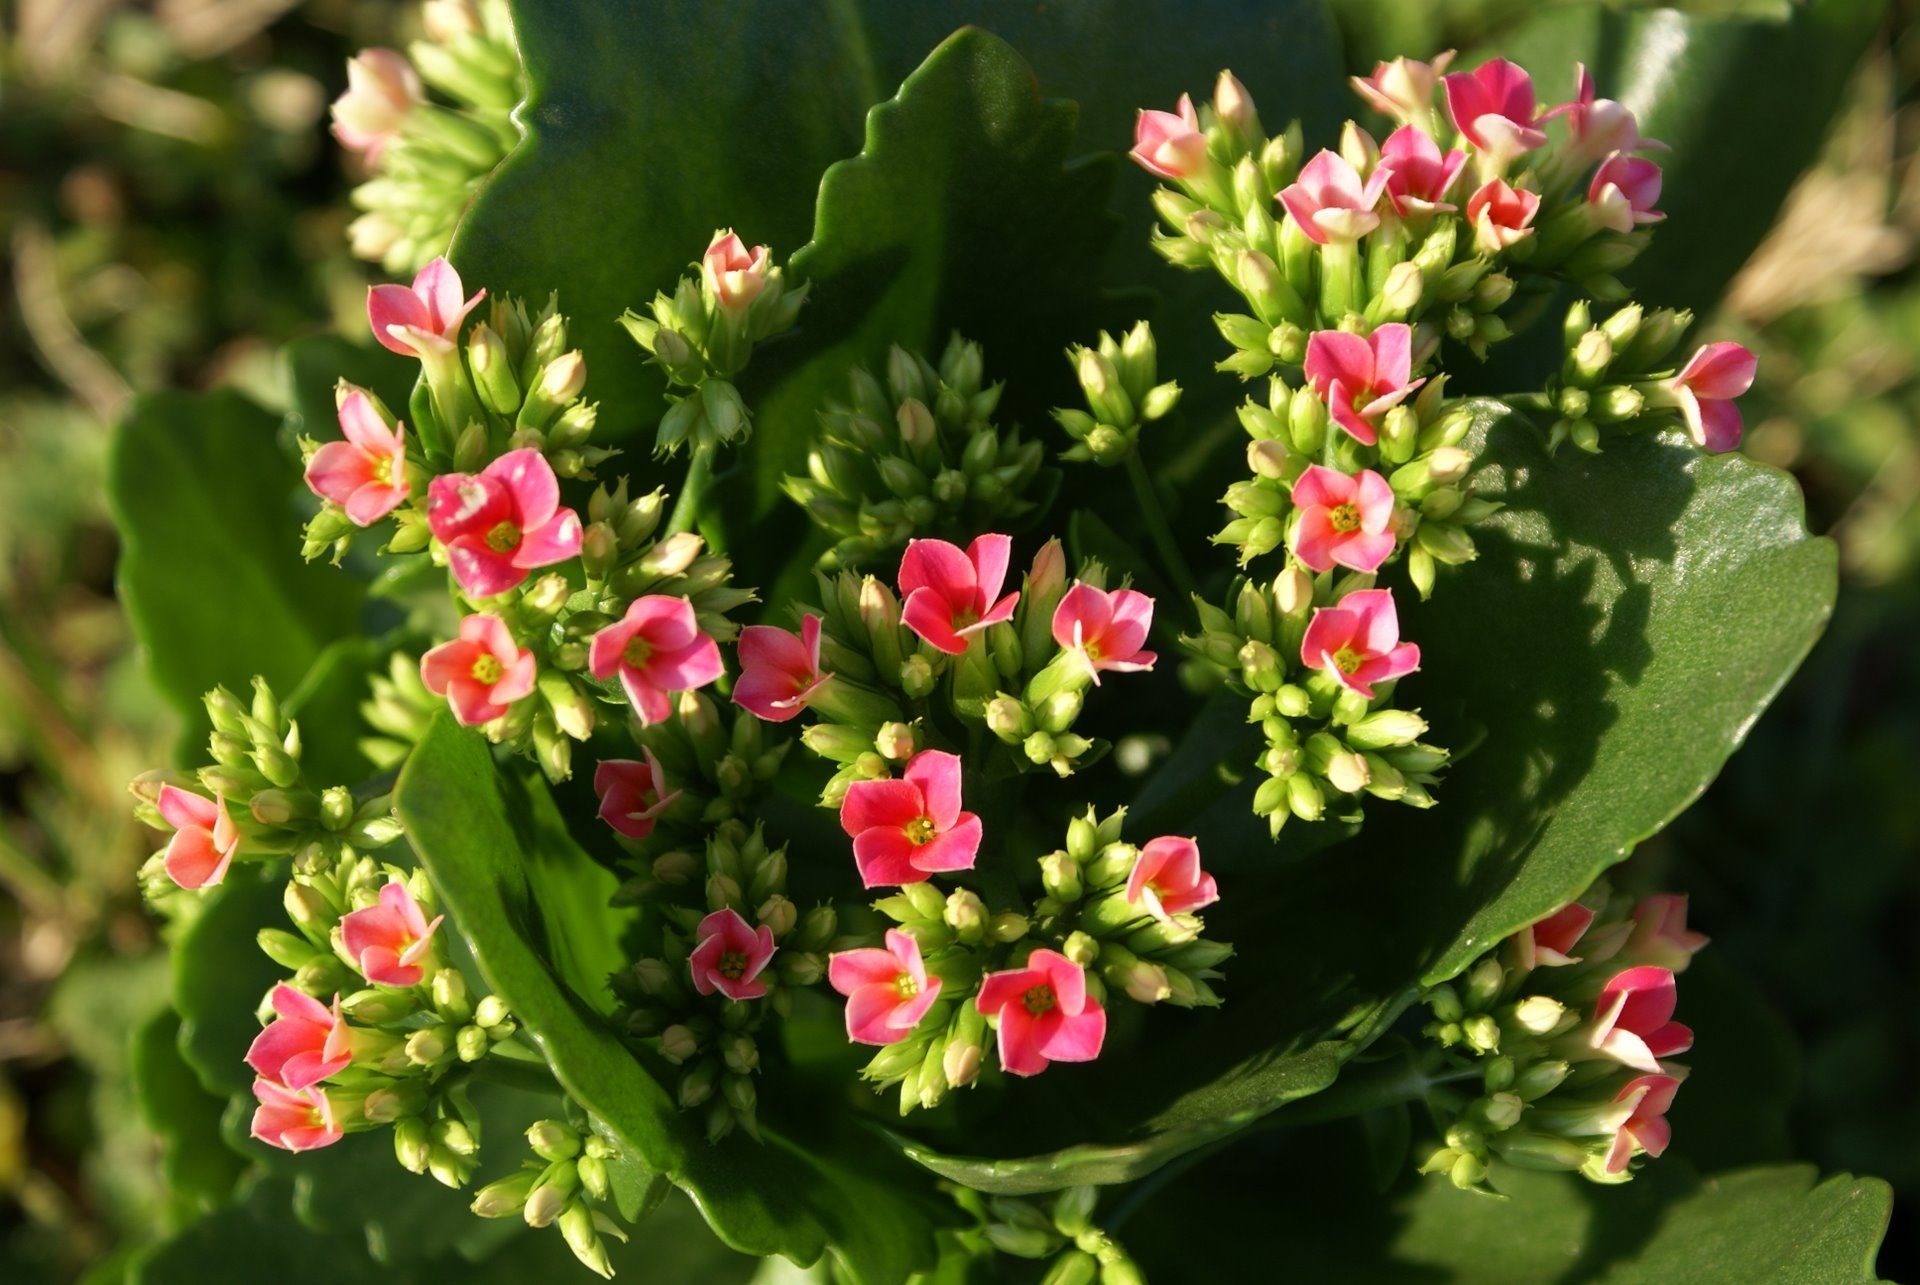 Kalanchoe how to care for christmas kalanchoe garden of kalanchoe how to care for christmas kalanchoe izmirmasajfo